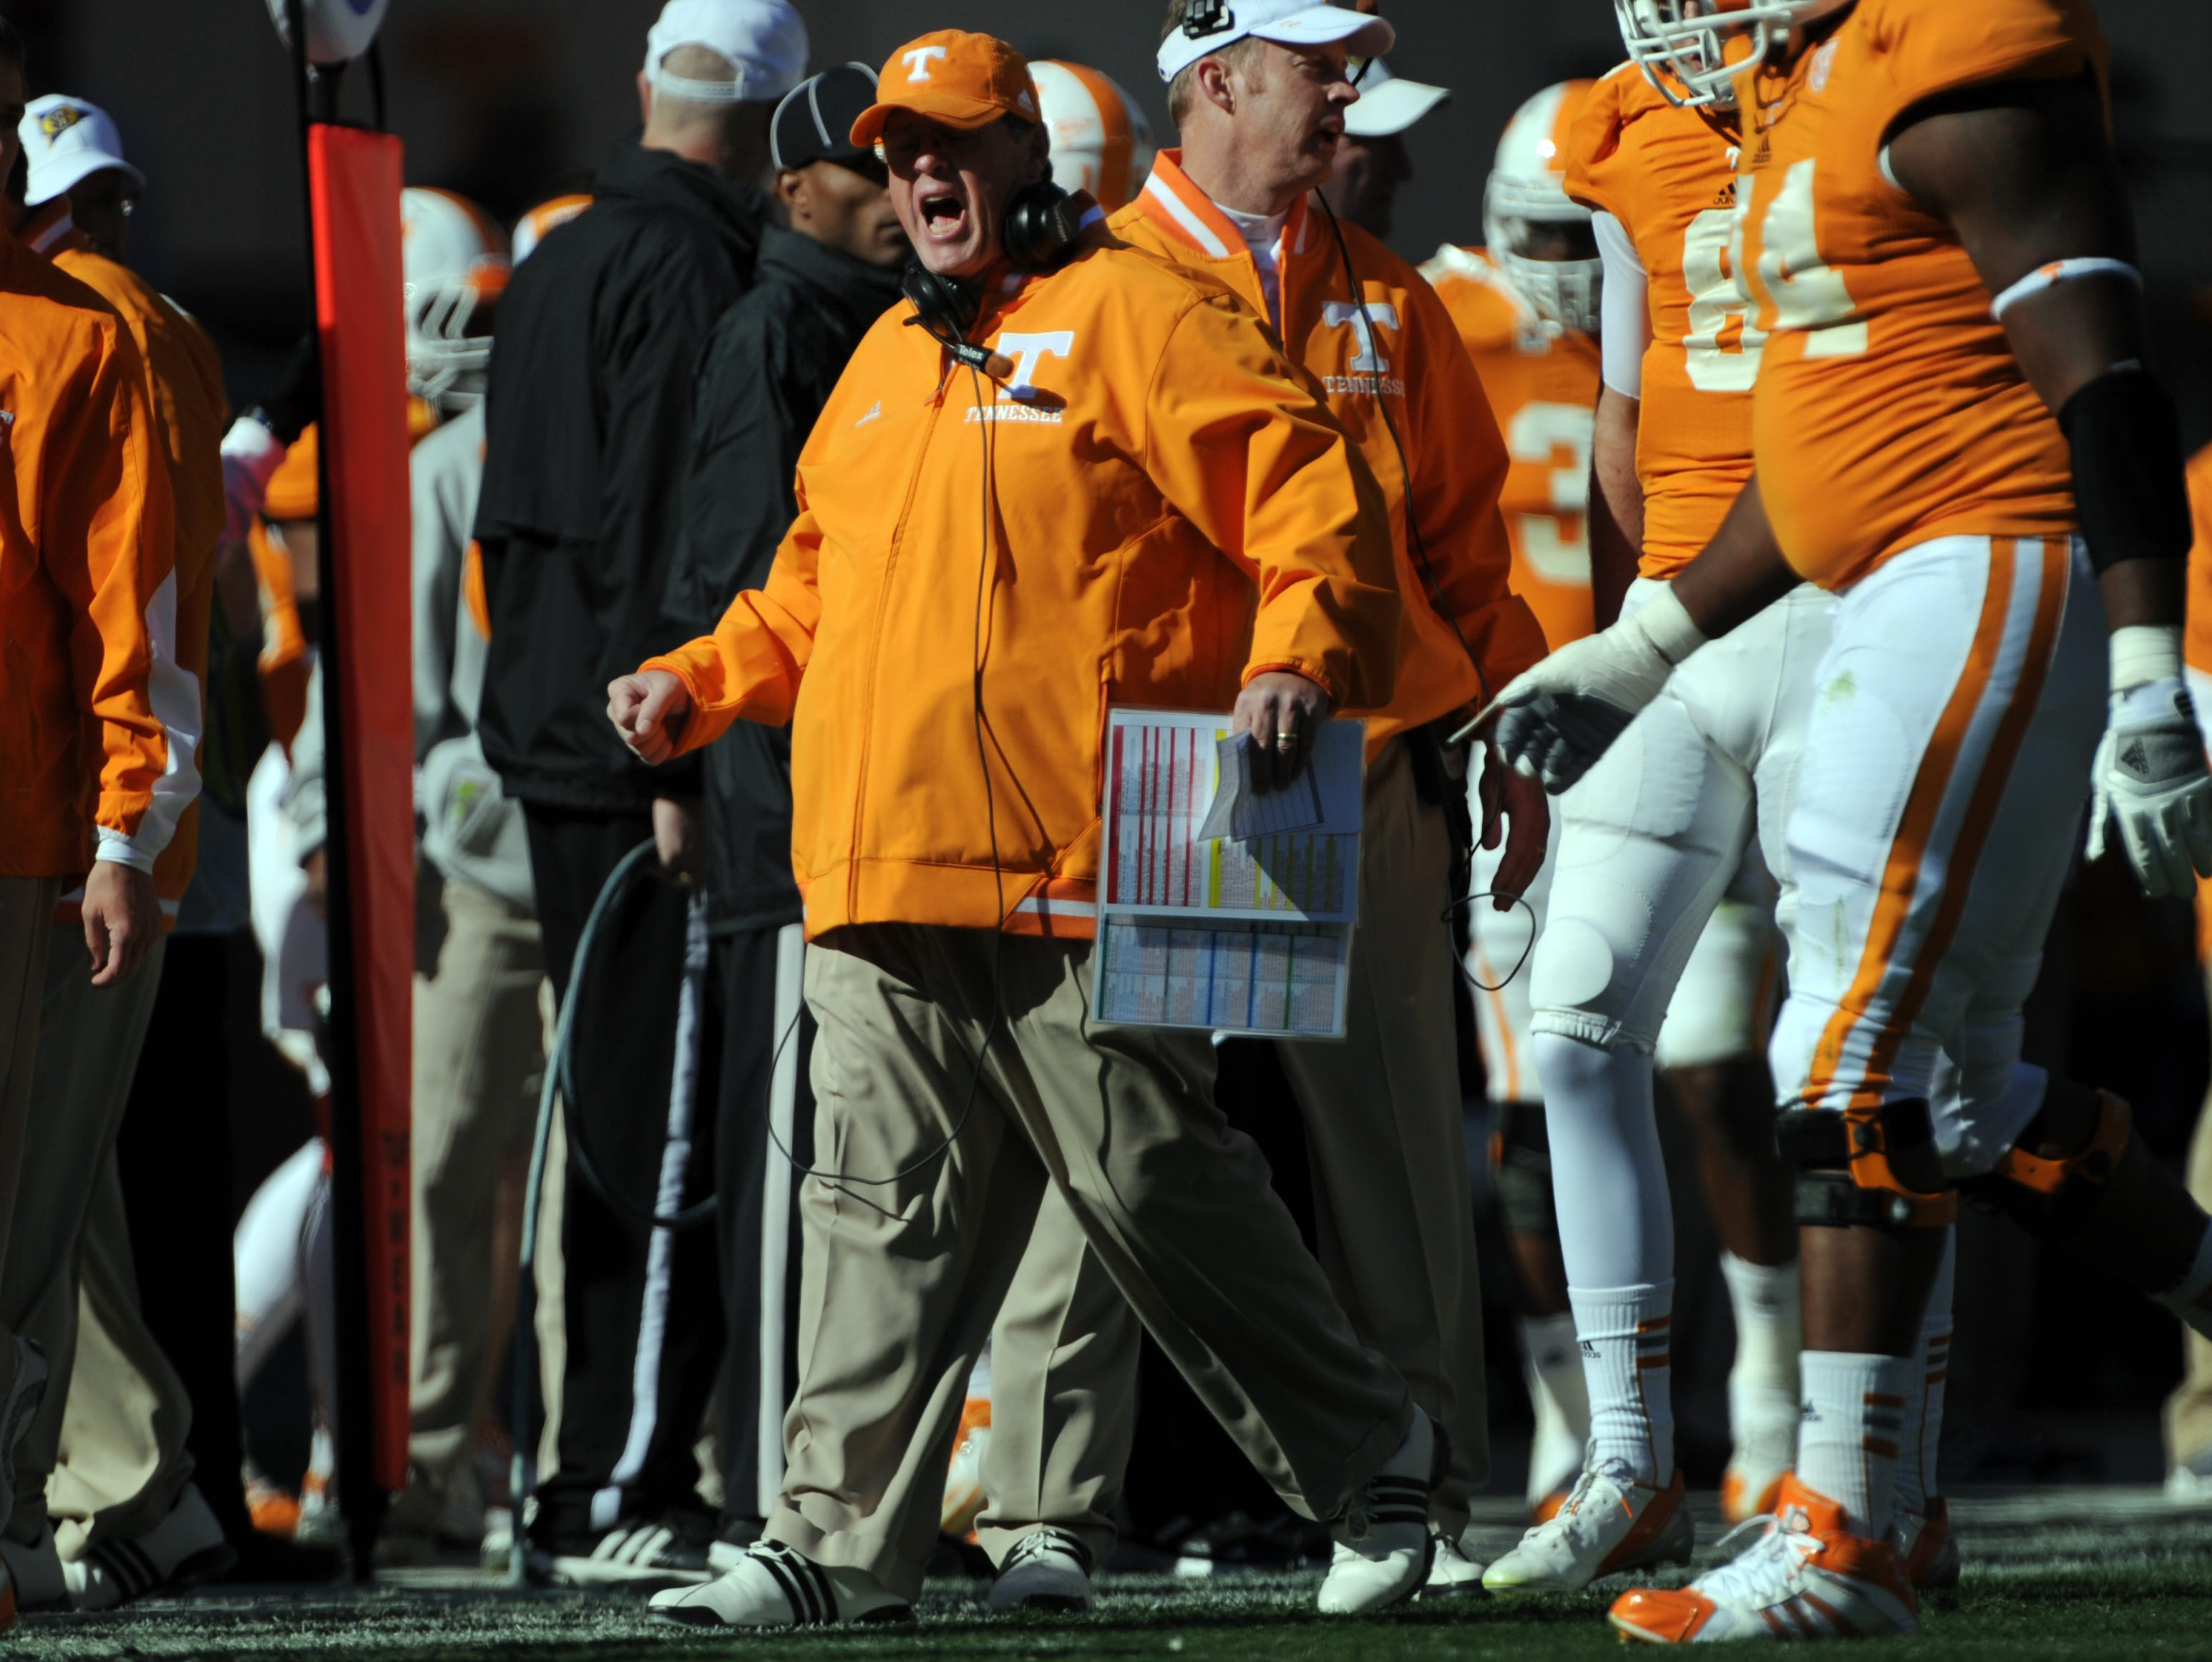 Tennessee interim head coach Jim Chaney responds to a play by the Volunteers during the game against the Kentucky Wildcats at Neyland Stadium Saturday, Nov. 24, 2012.